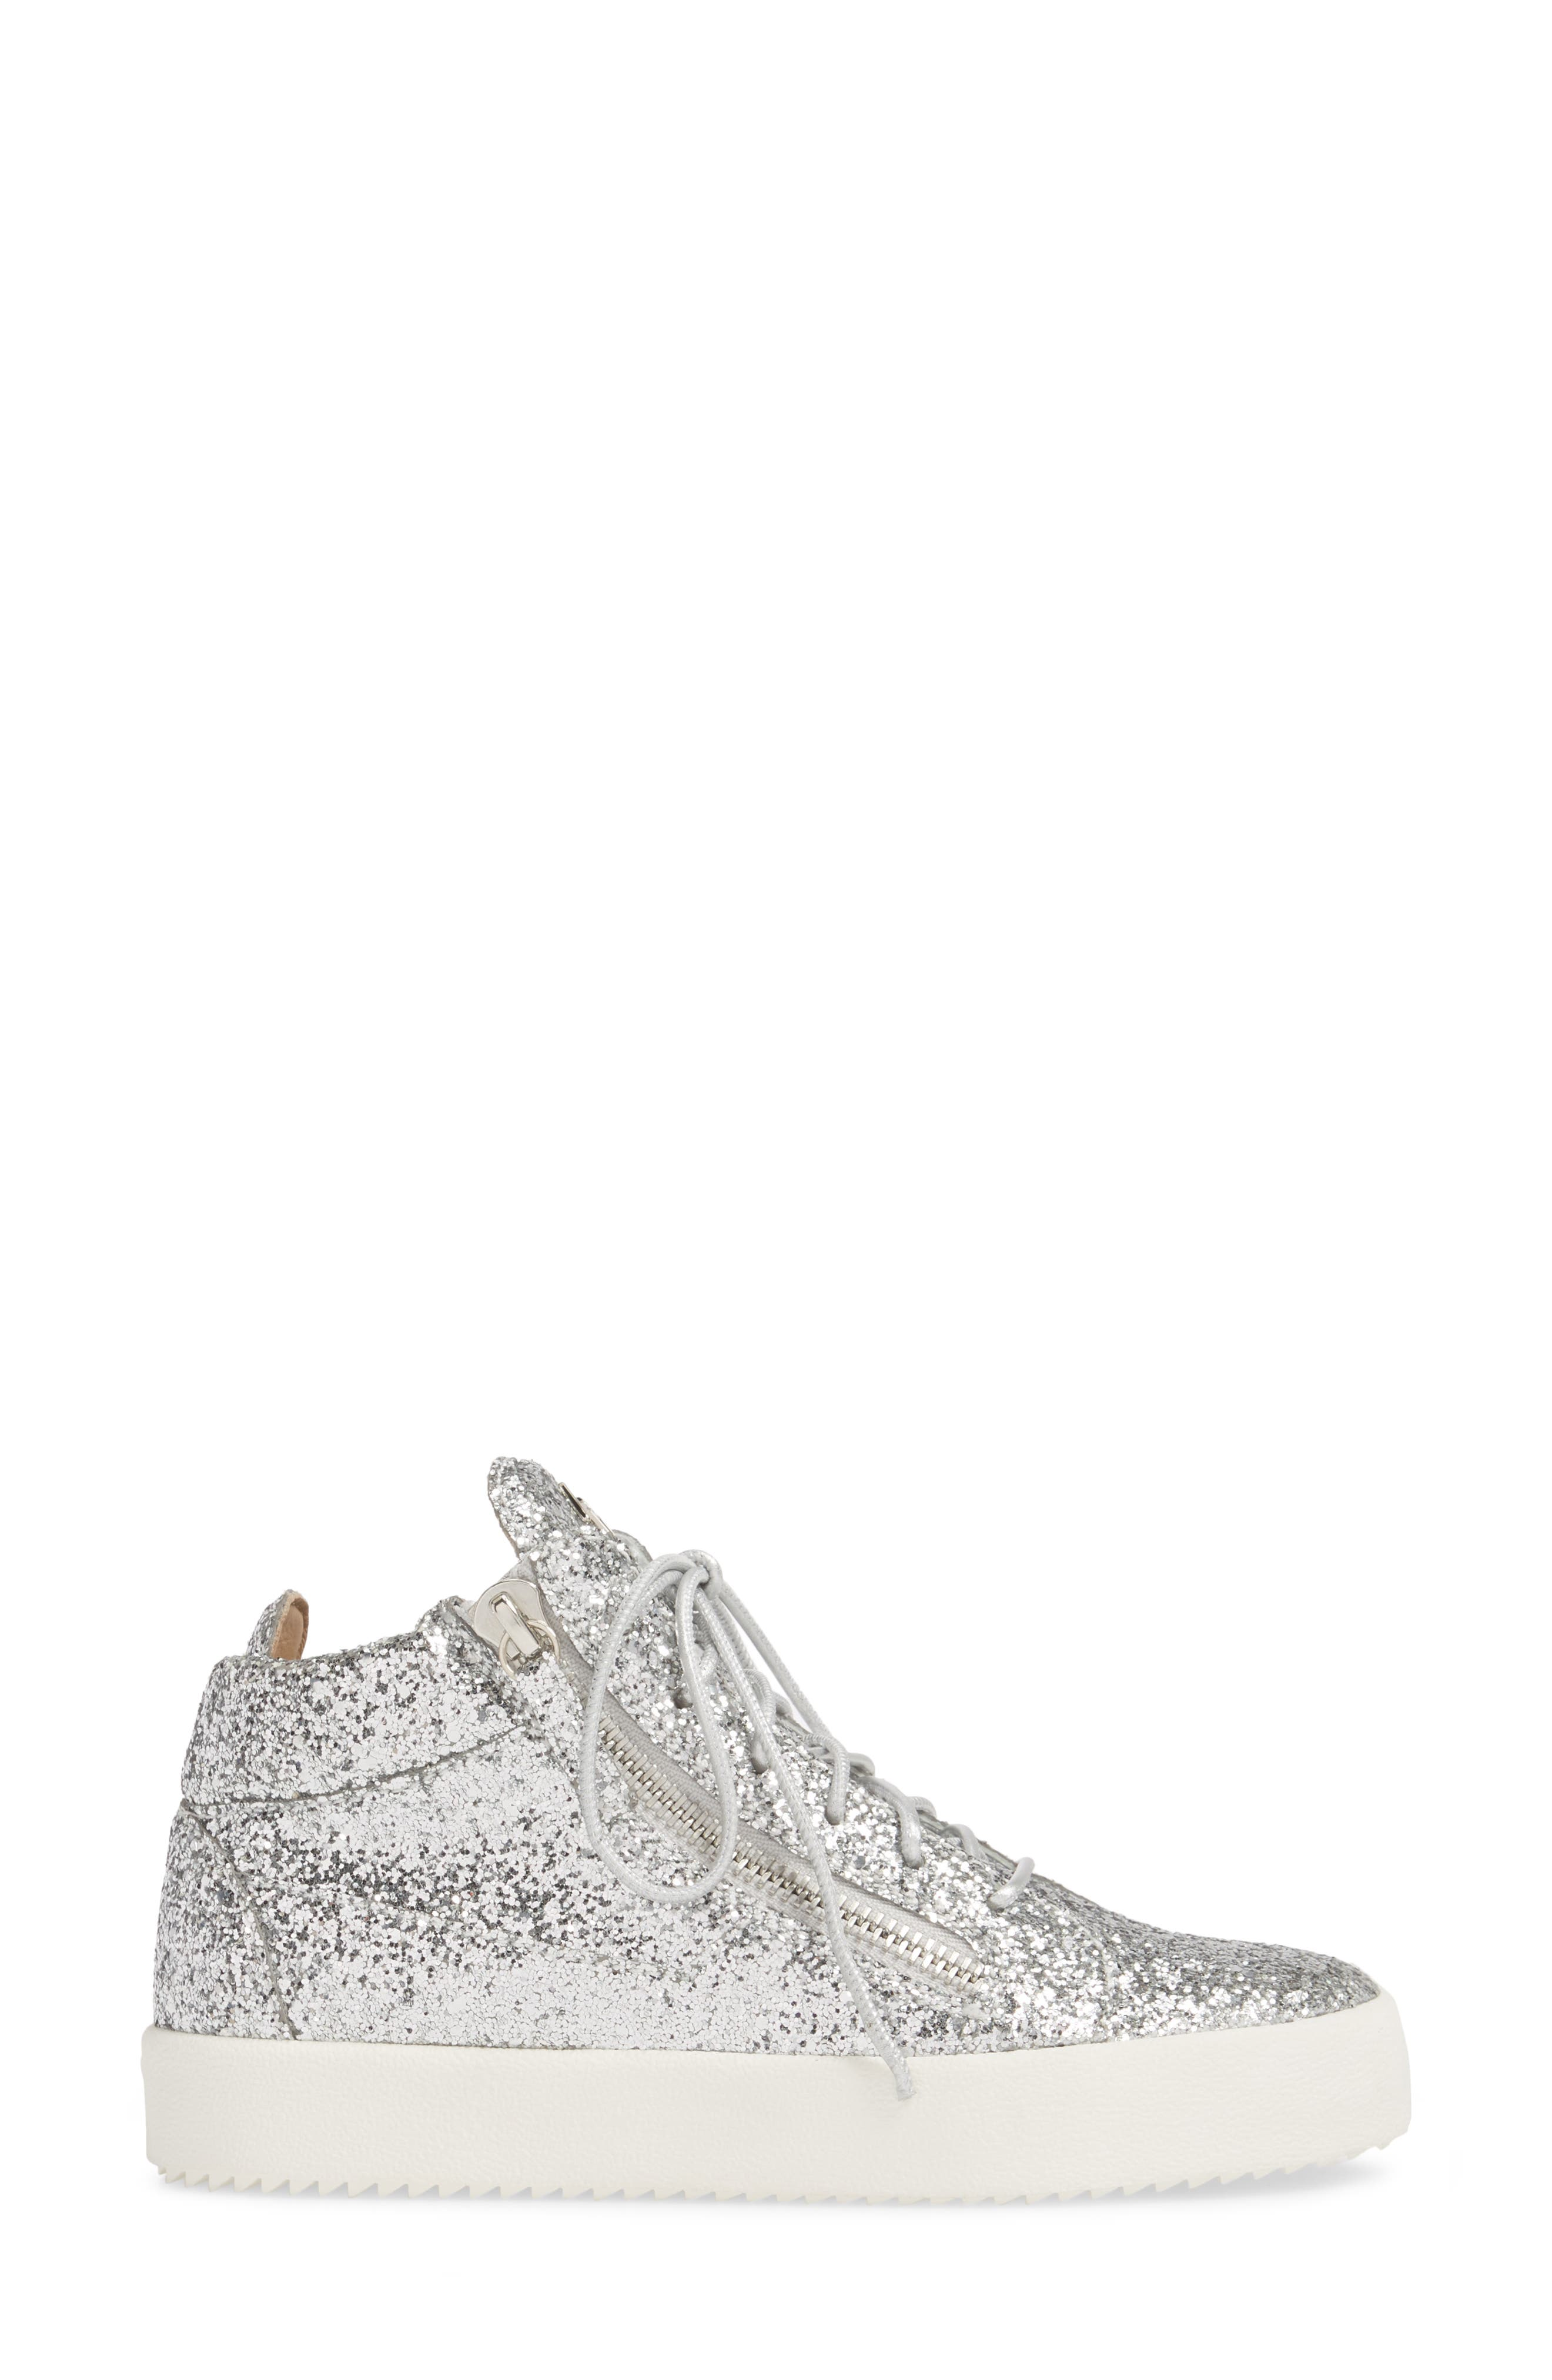 May London High Top Sneaker,                             Alternate thumbnail 3, color,                             SILVER